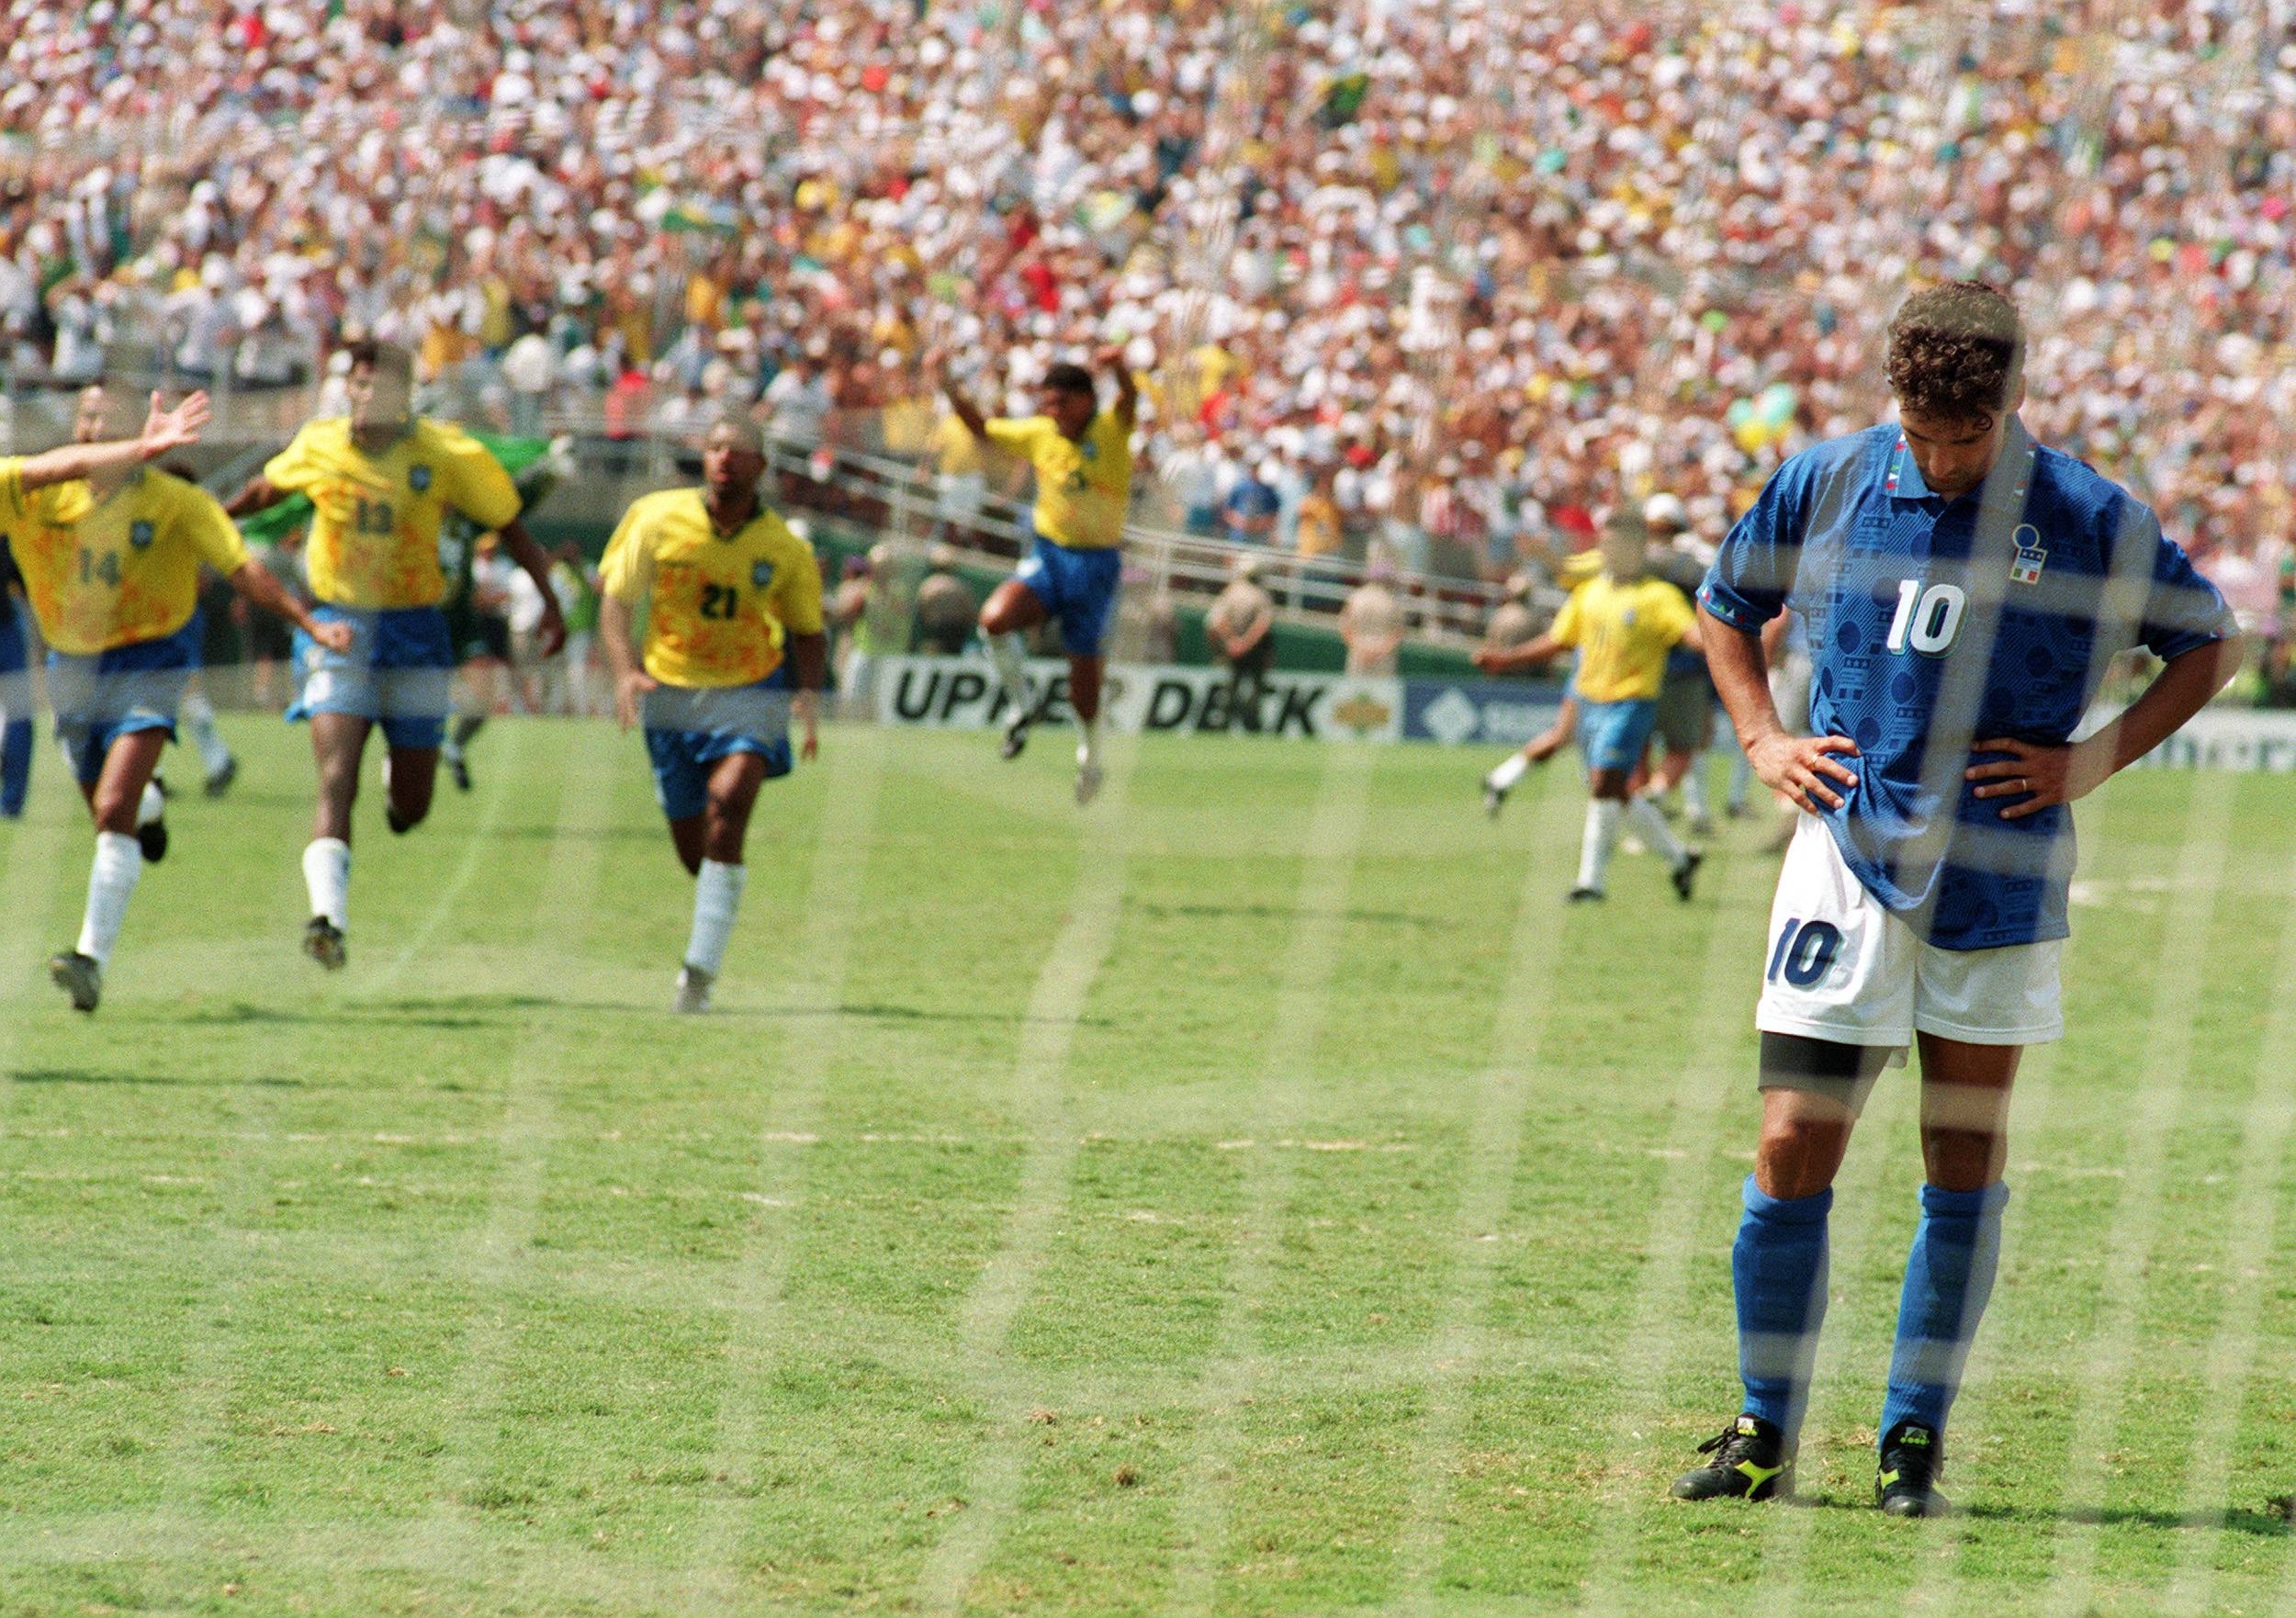 LOS ANGELES, UNITED STATES:  Brazilian players run to join their teammates as Italian midfielder Roberto Baggio bows his head after he missed his penalty kick giving Brazil a 3-2 victory in the shoot-out session (0-0 after extra time) at the end of the World Cup final, 17 July 1994 at the Rose Bowl in Pasadena. Brazil won its fourth World Cup title after 1958, 1962 and 1970.   AFP PHOTO/OMAR TORRES (Photo credit should read OMAR TORRES/AFP/Getty Images)